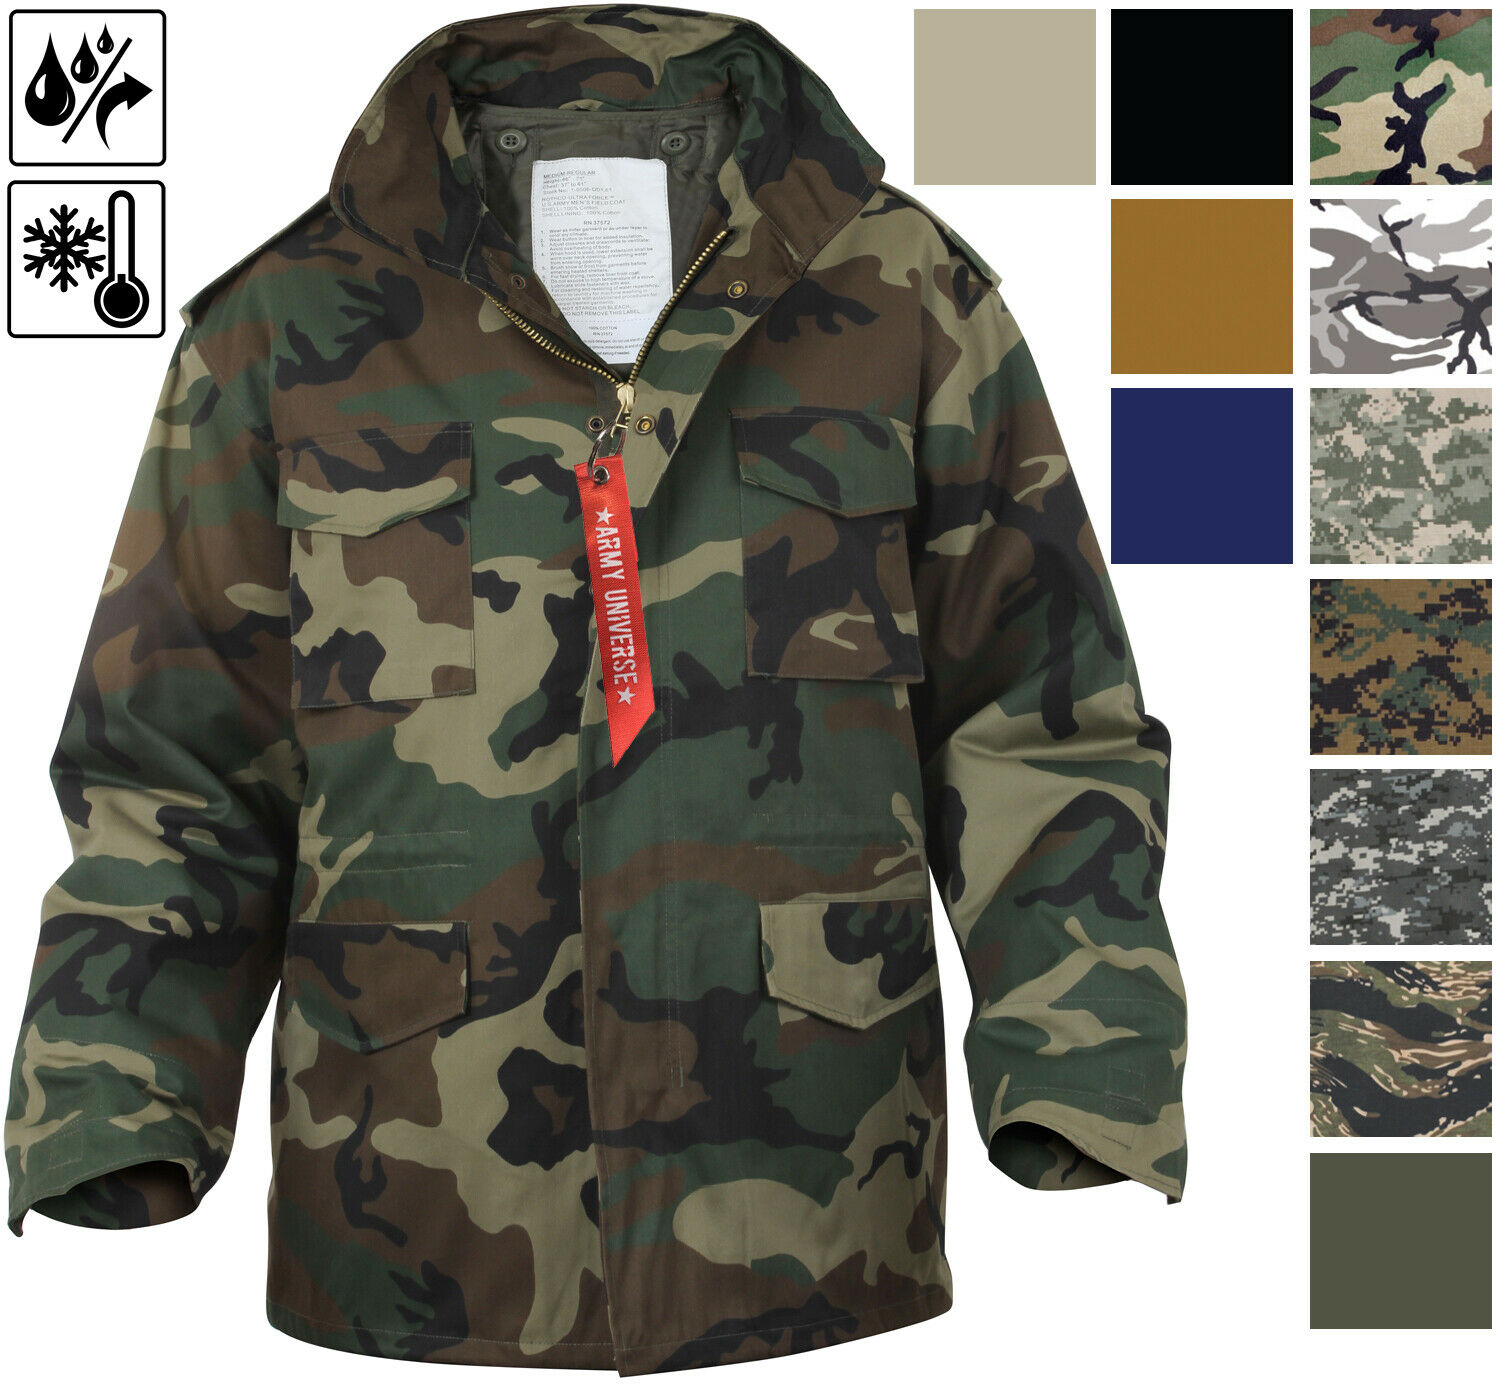 Olive Drab Military Style Rothco Soft Shell Tactical M-65 Field Jacket